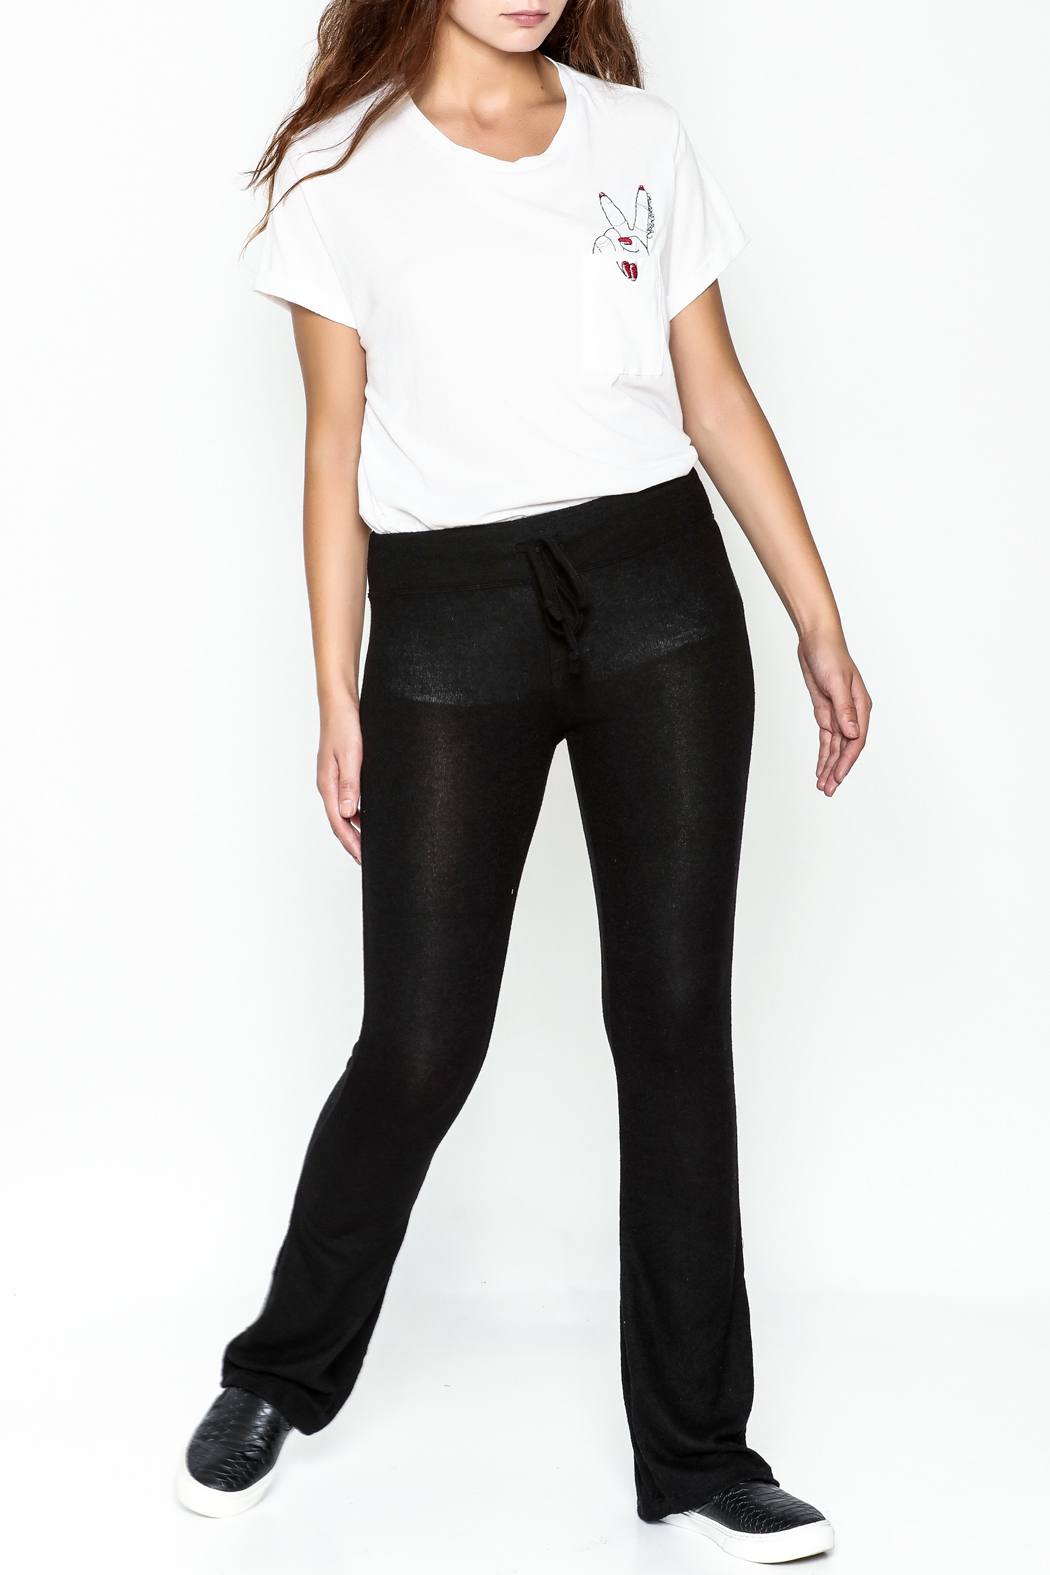 z supply Sheer Black Bootcut Pants - Side Cropped Image